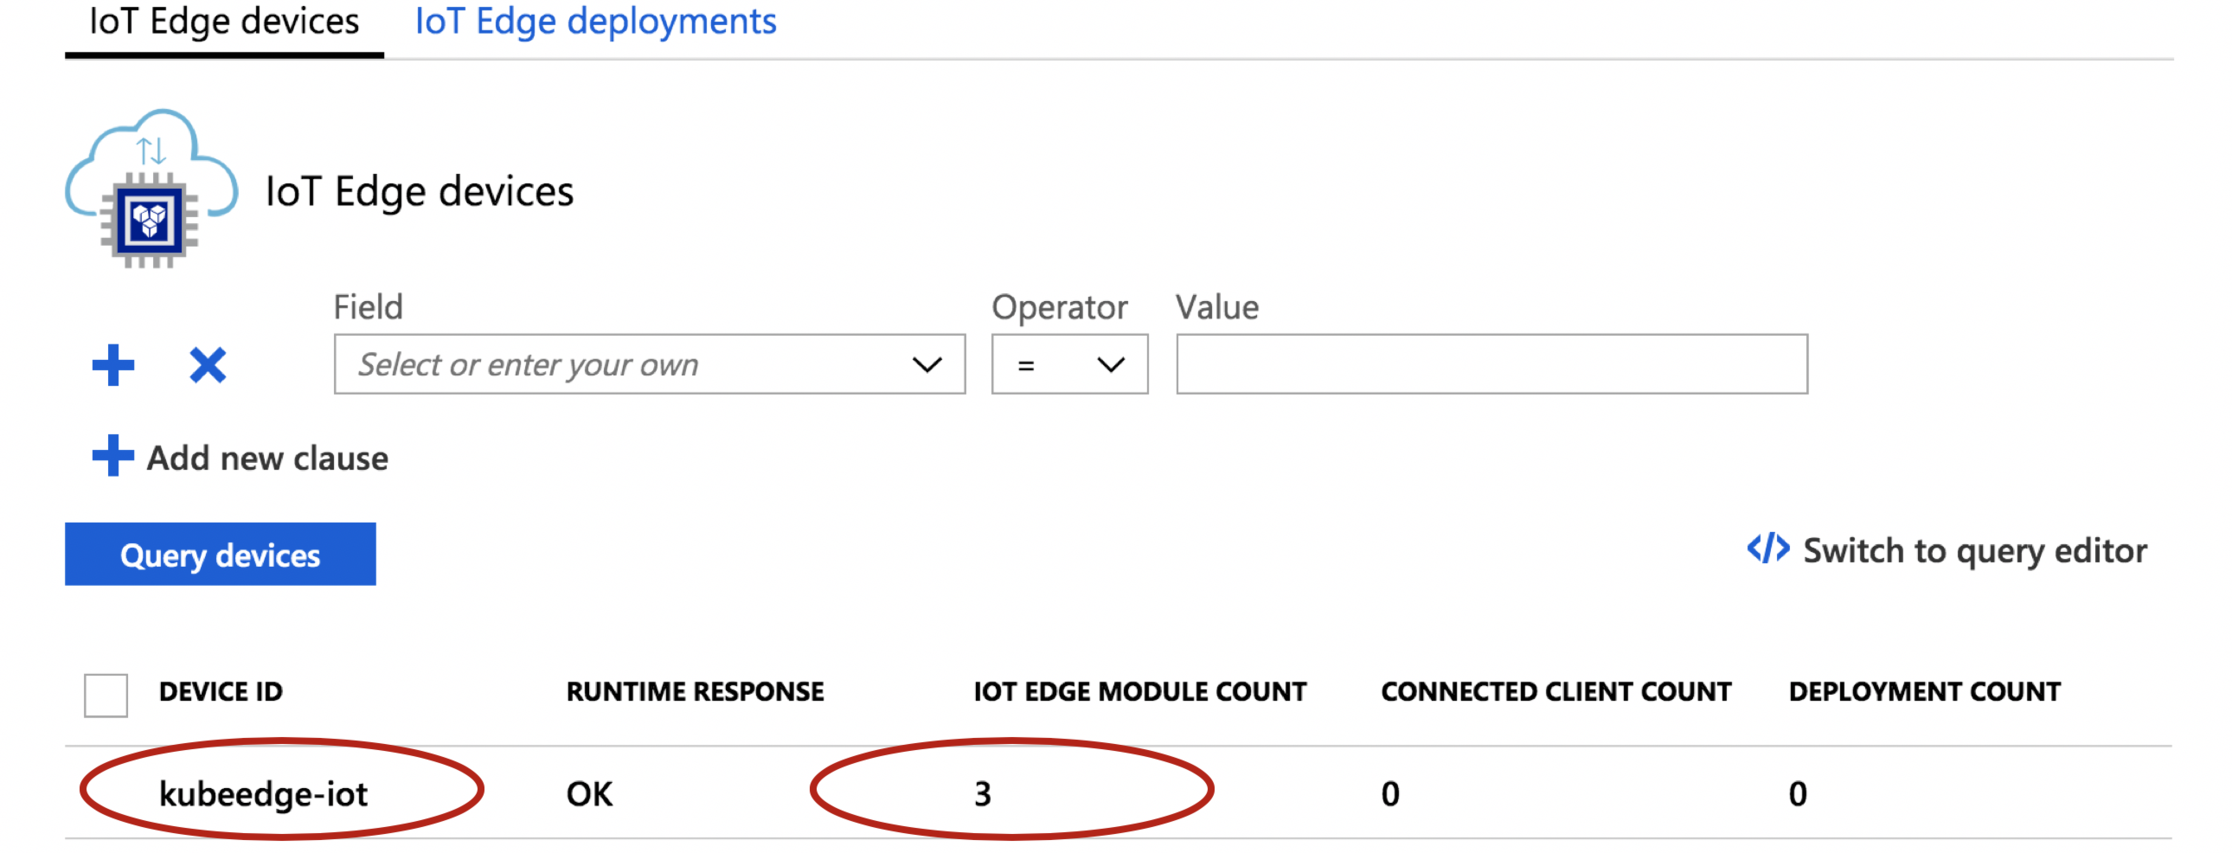 Azure — IoT Edge Workloads on Kubernetes - ITNEXT